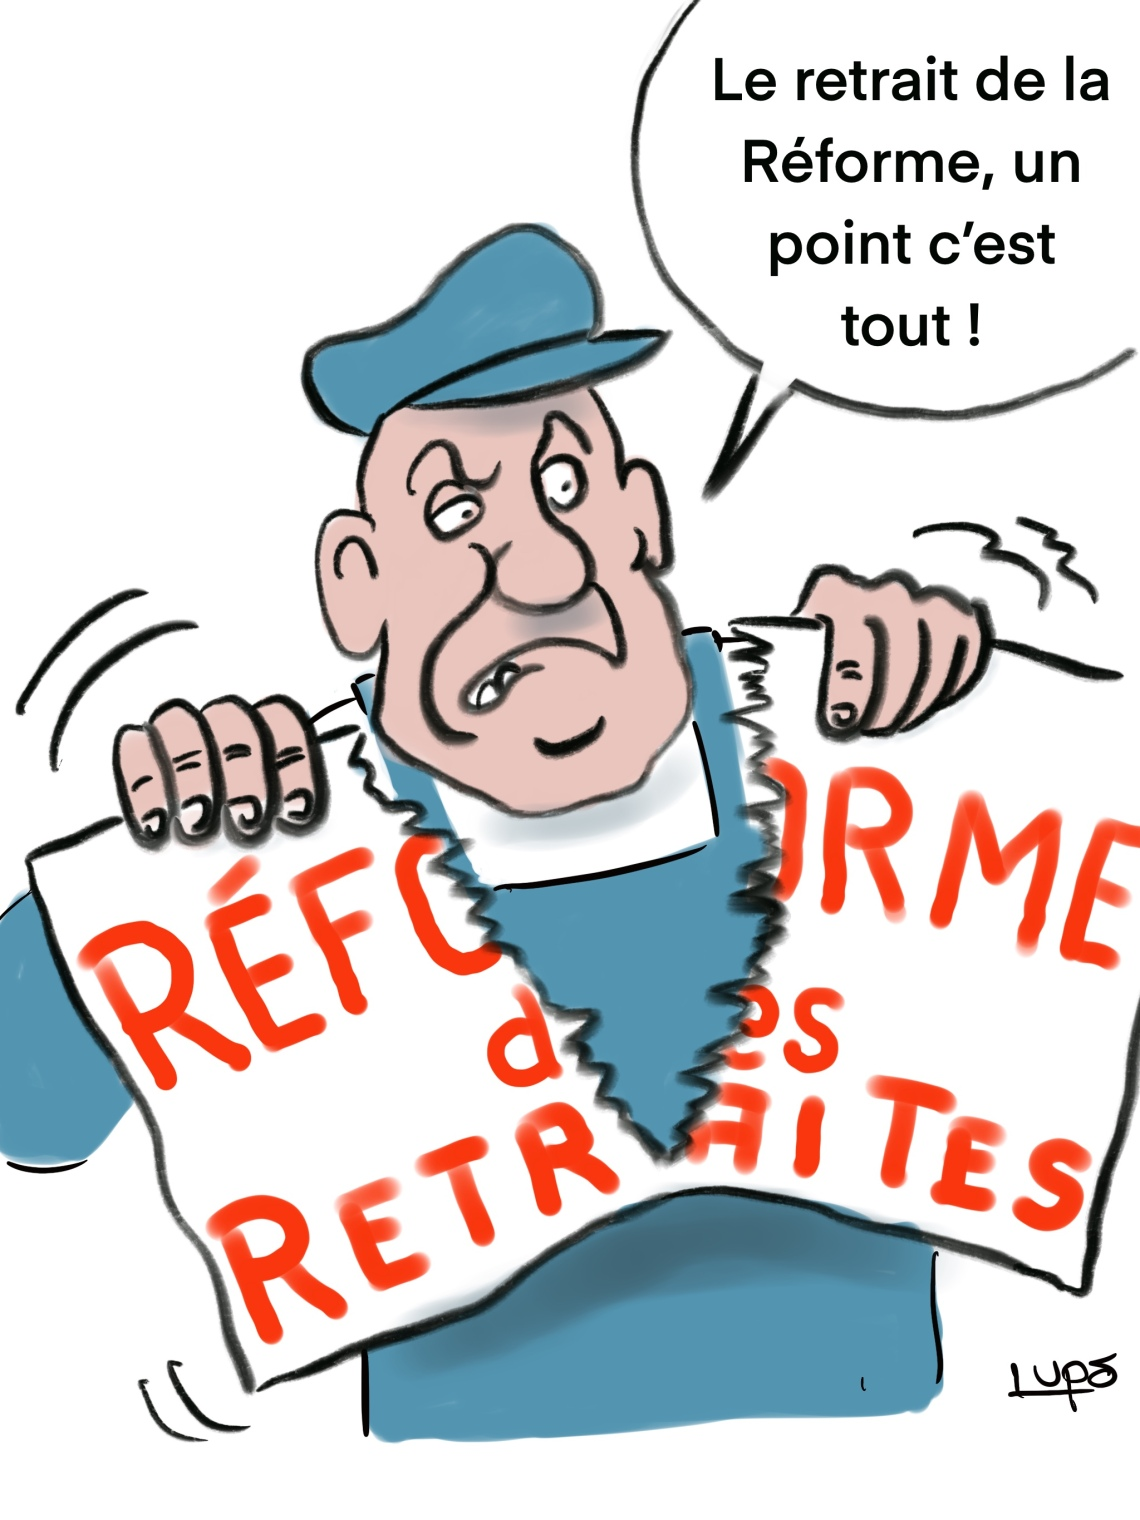 Illustration_sans_titre.jpg